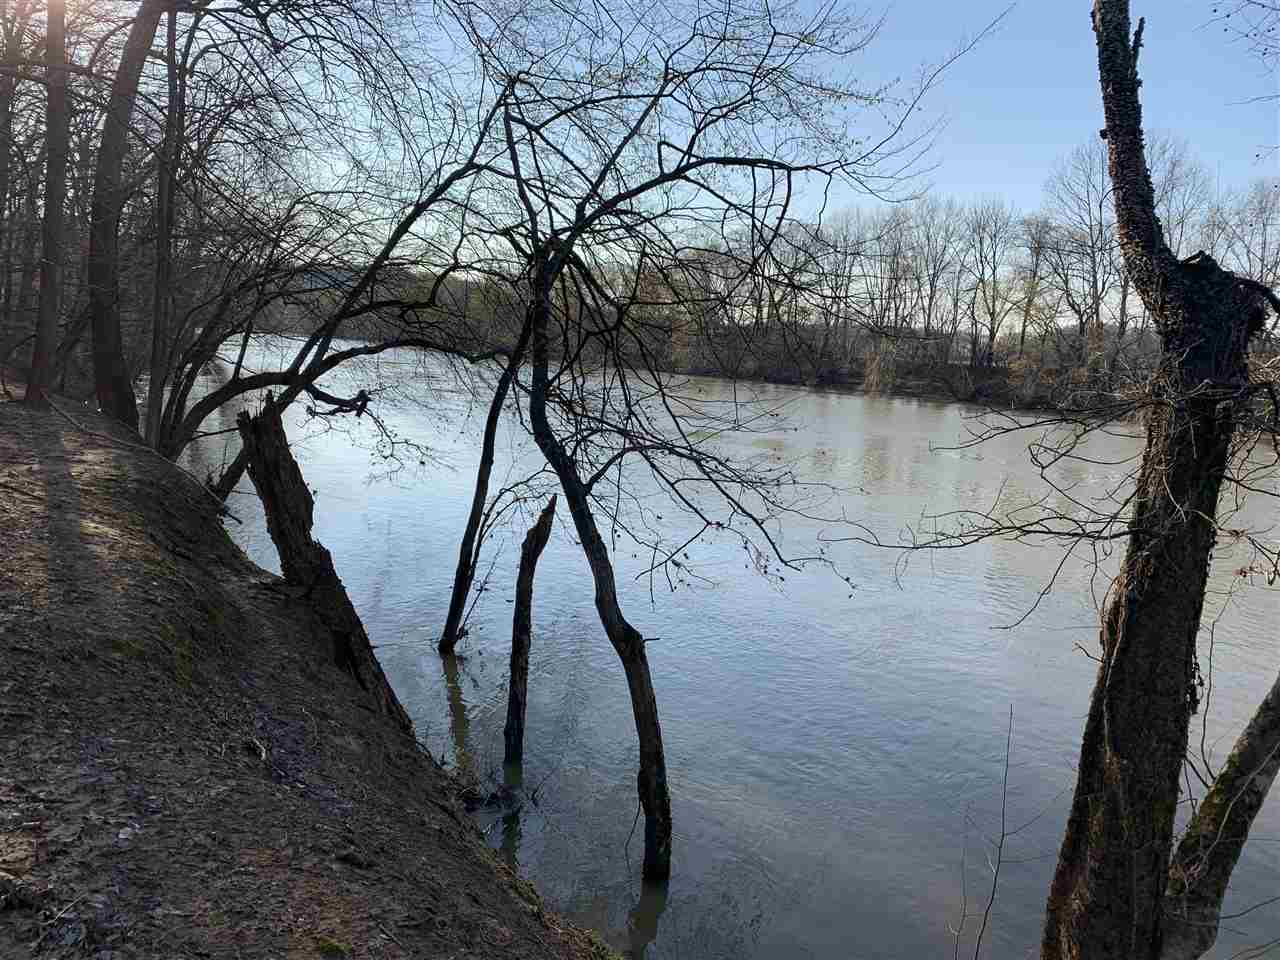 South Central Kentucky  Green River frontage! Great recreational tract that joins Green river. The property is very secluded and primitive, making it a great get away for everyone. Land has mature trees and deeded access by easement. Green River lot (1.938 acres) (Lot 12)in Butler county. Only asking $12,500.